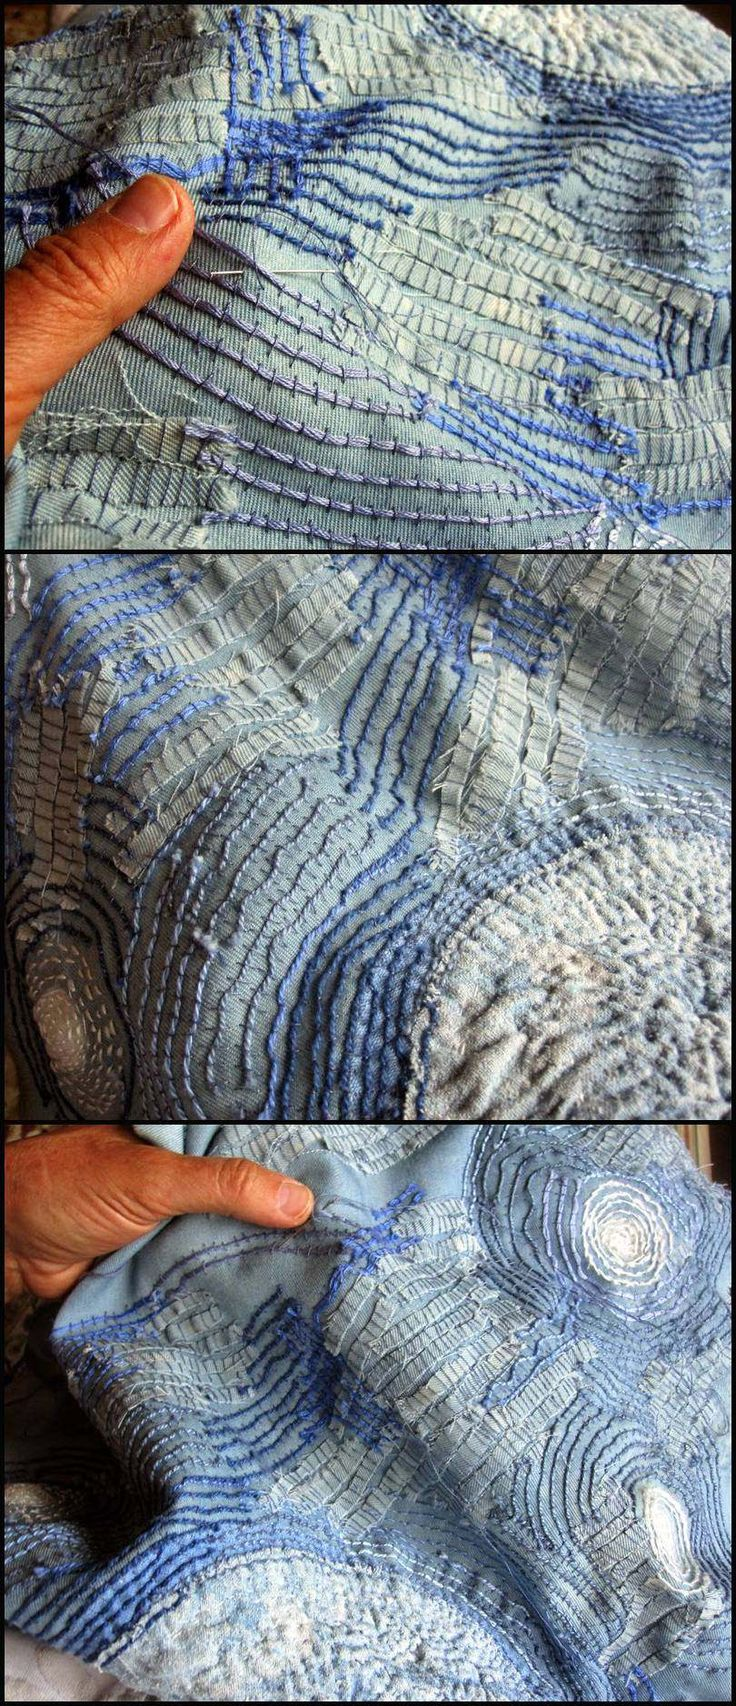 "JUDY MARTIN : Rough couching, over raveled weft threads, un-separated floss, and narrow strips of denim. It evokes Starry Night. ""The threads and fabrics are familiar things used in an unfamiliar way. What is usually used to make a neat seam or a mended pocket, is used here in a messy and raveled manner."" Read her post and enjoy the detail photos."